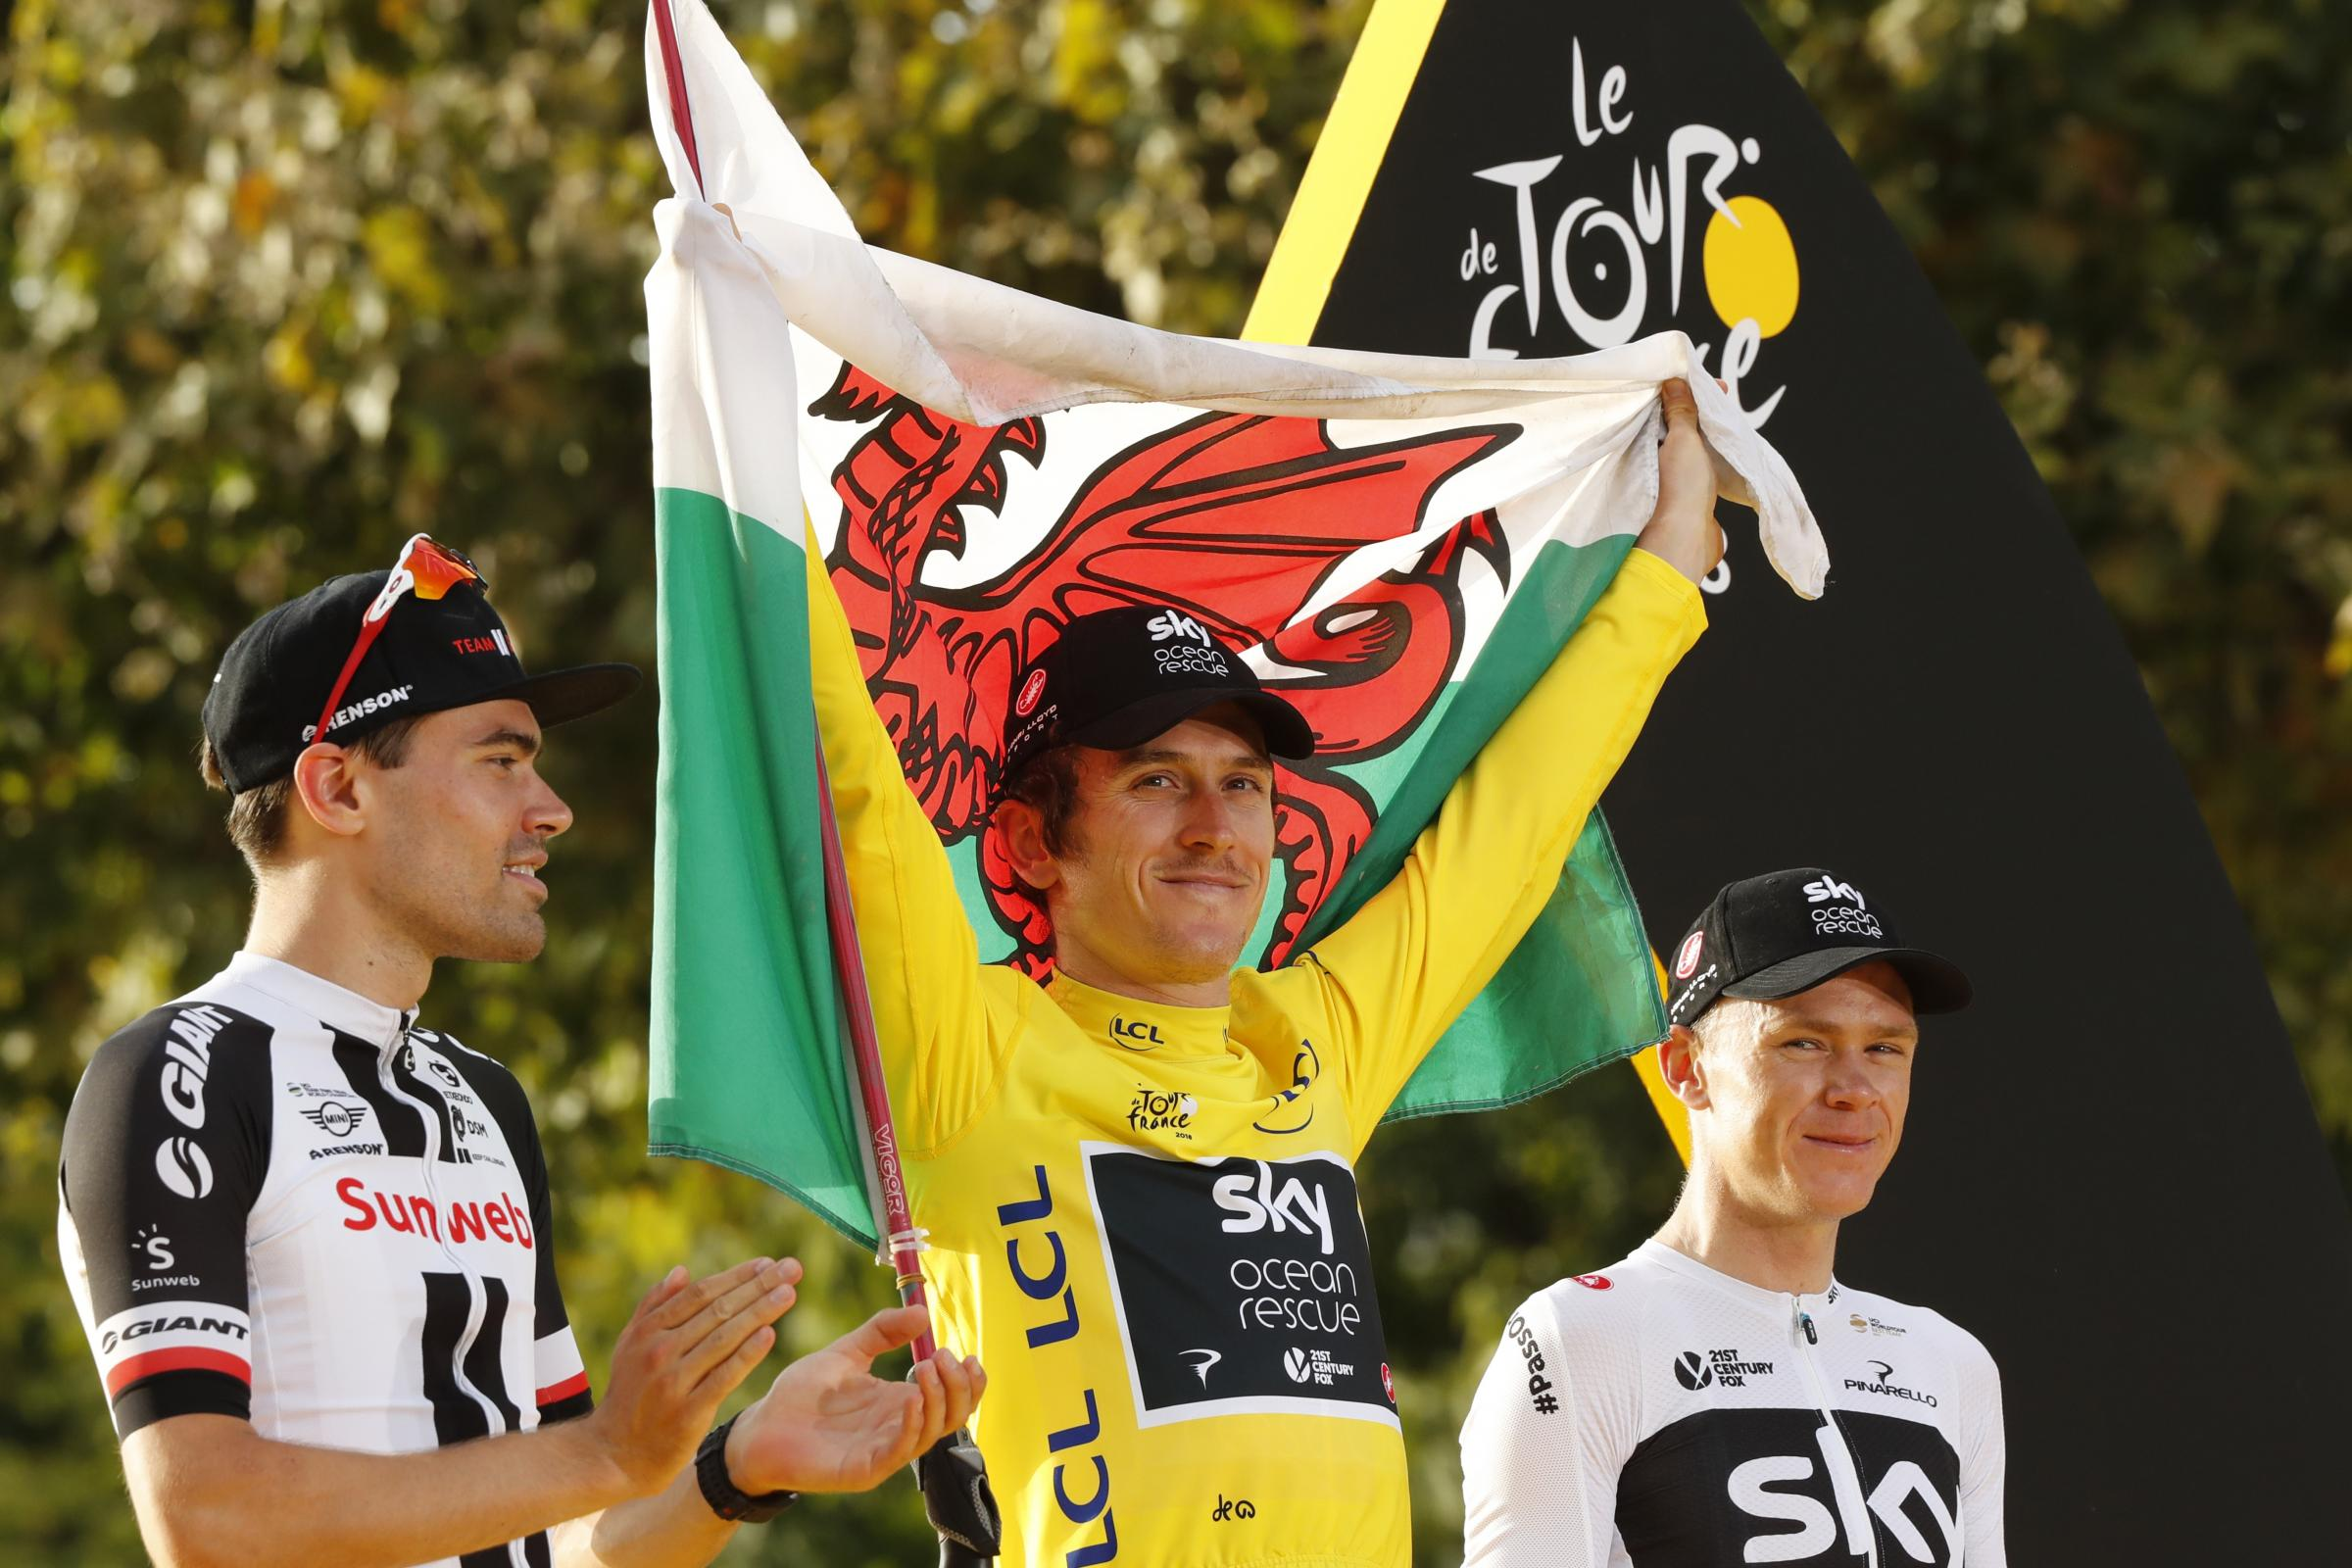 Geraint Thomas Wins Tour de France Title